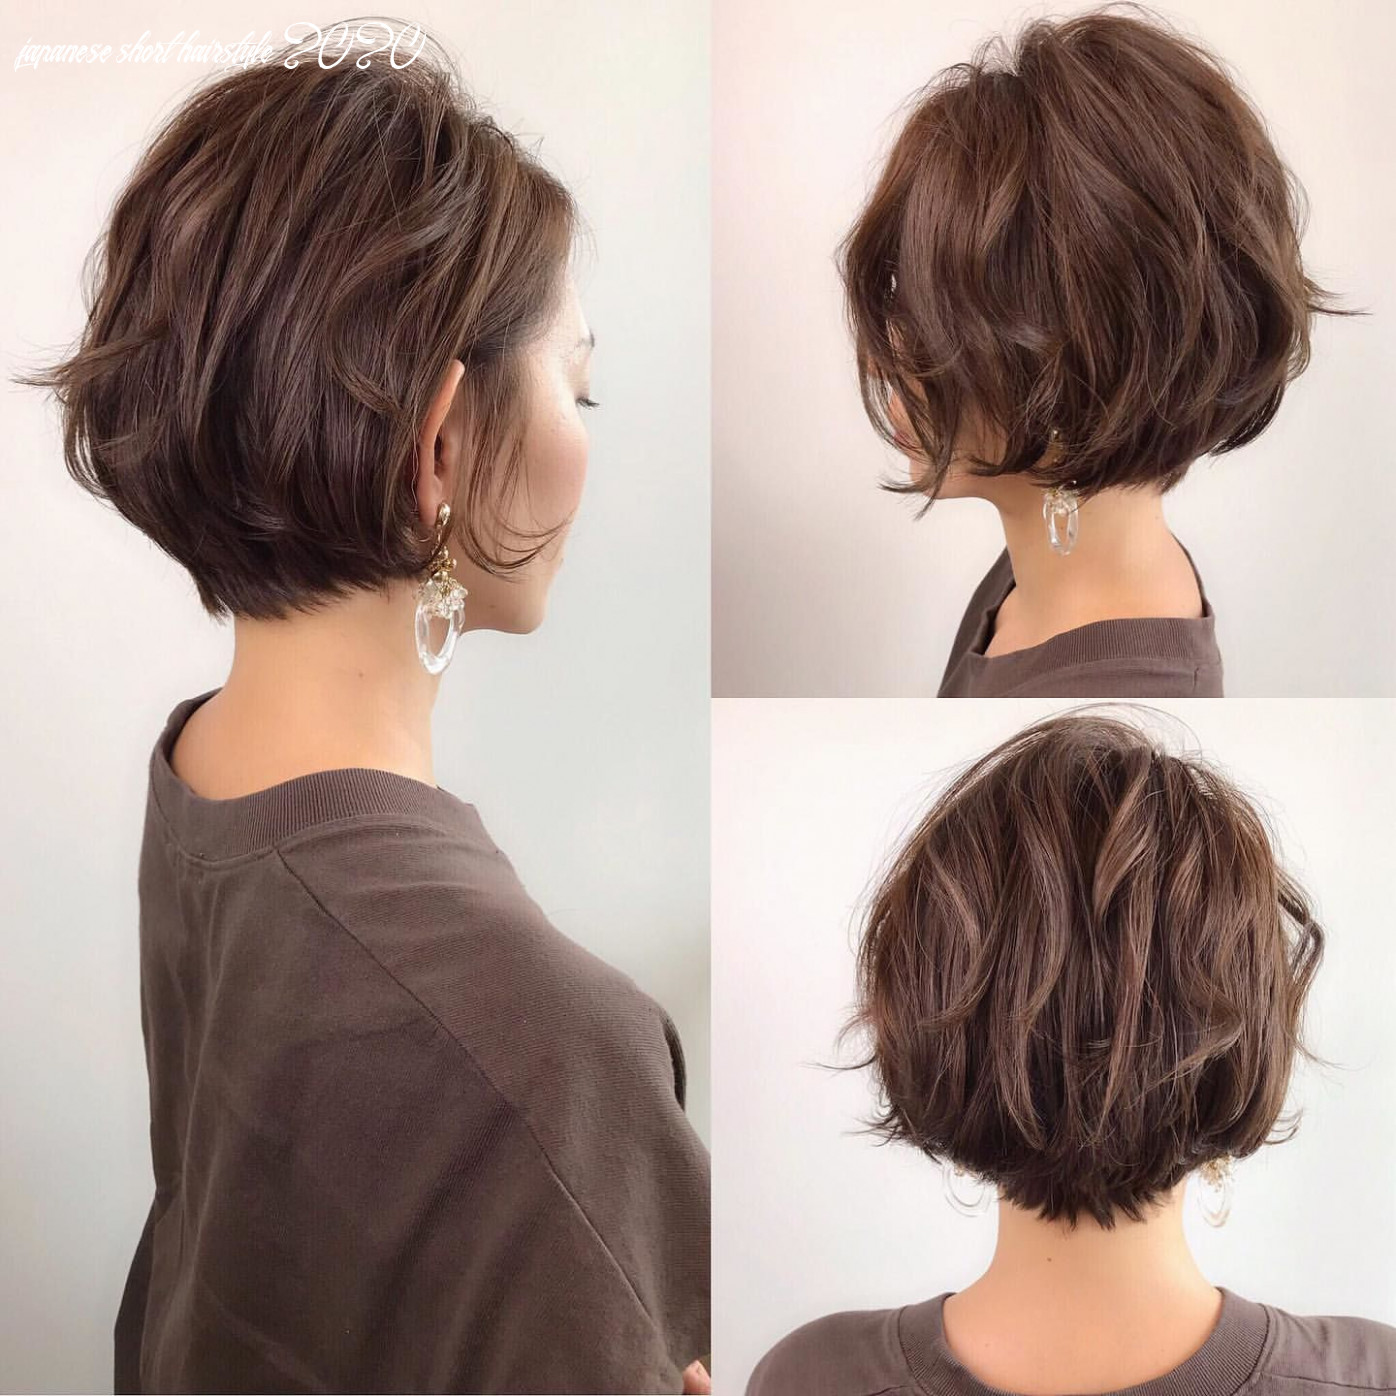 Japanese hairstyle design has always had its characteristics so